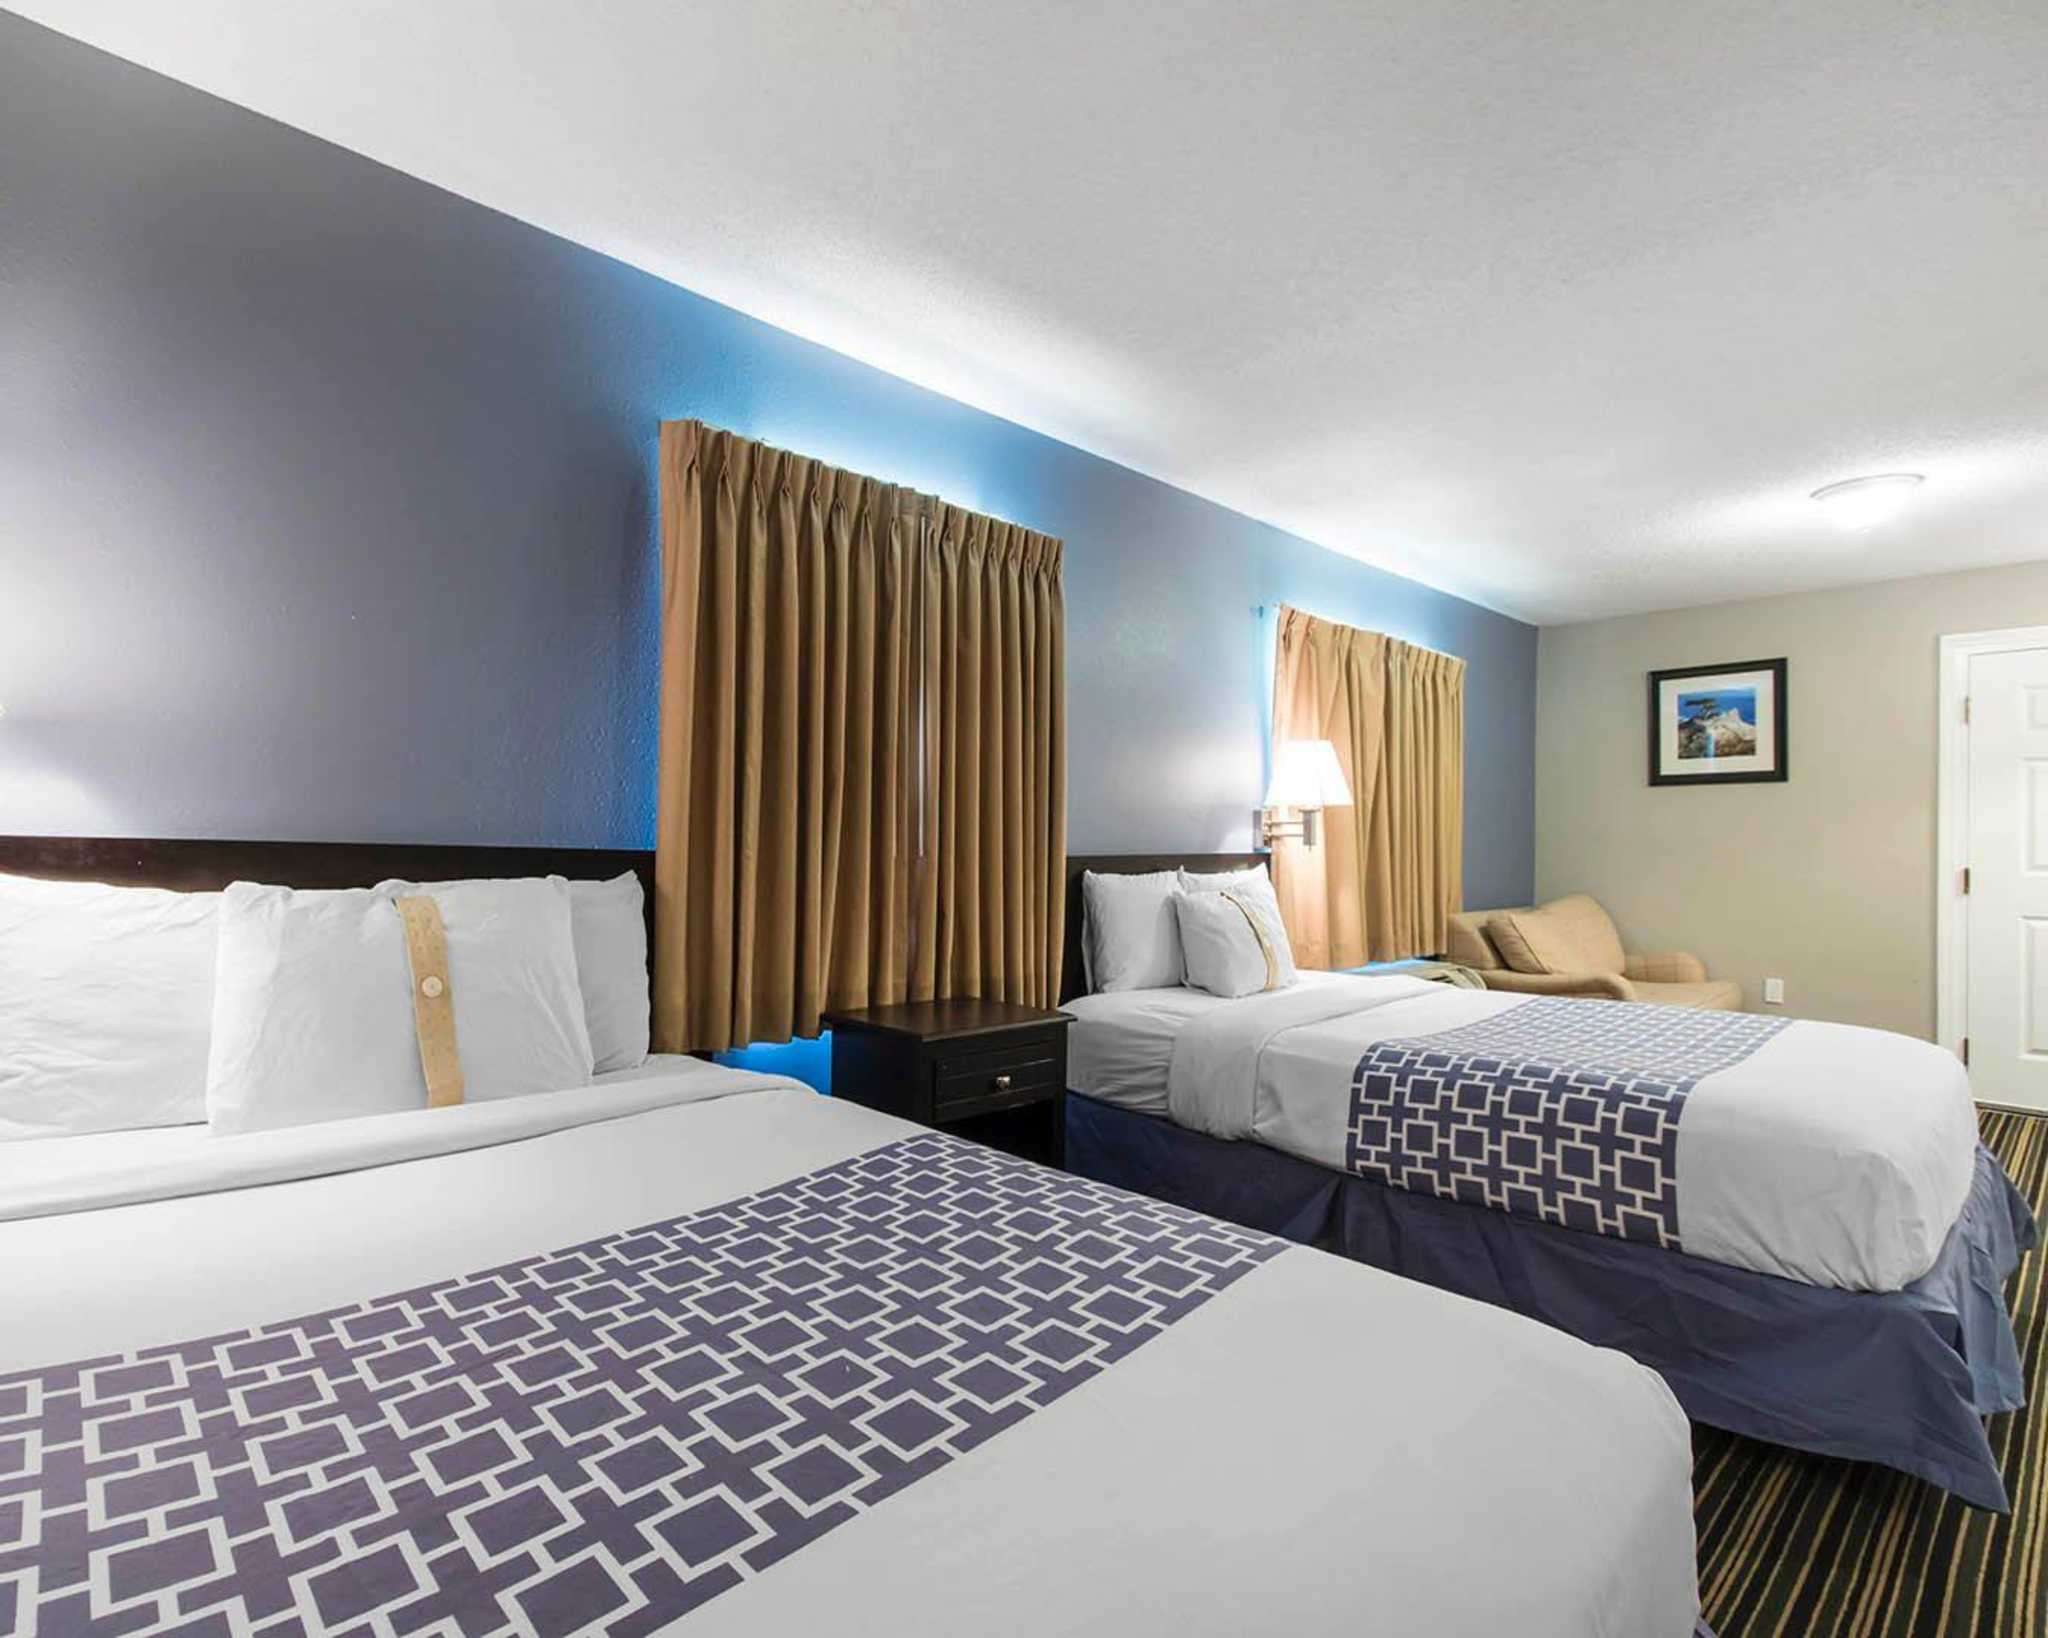 Pet Friendly Extended Stay Hotels Near Me Smoking Rooms